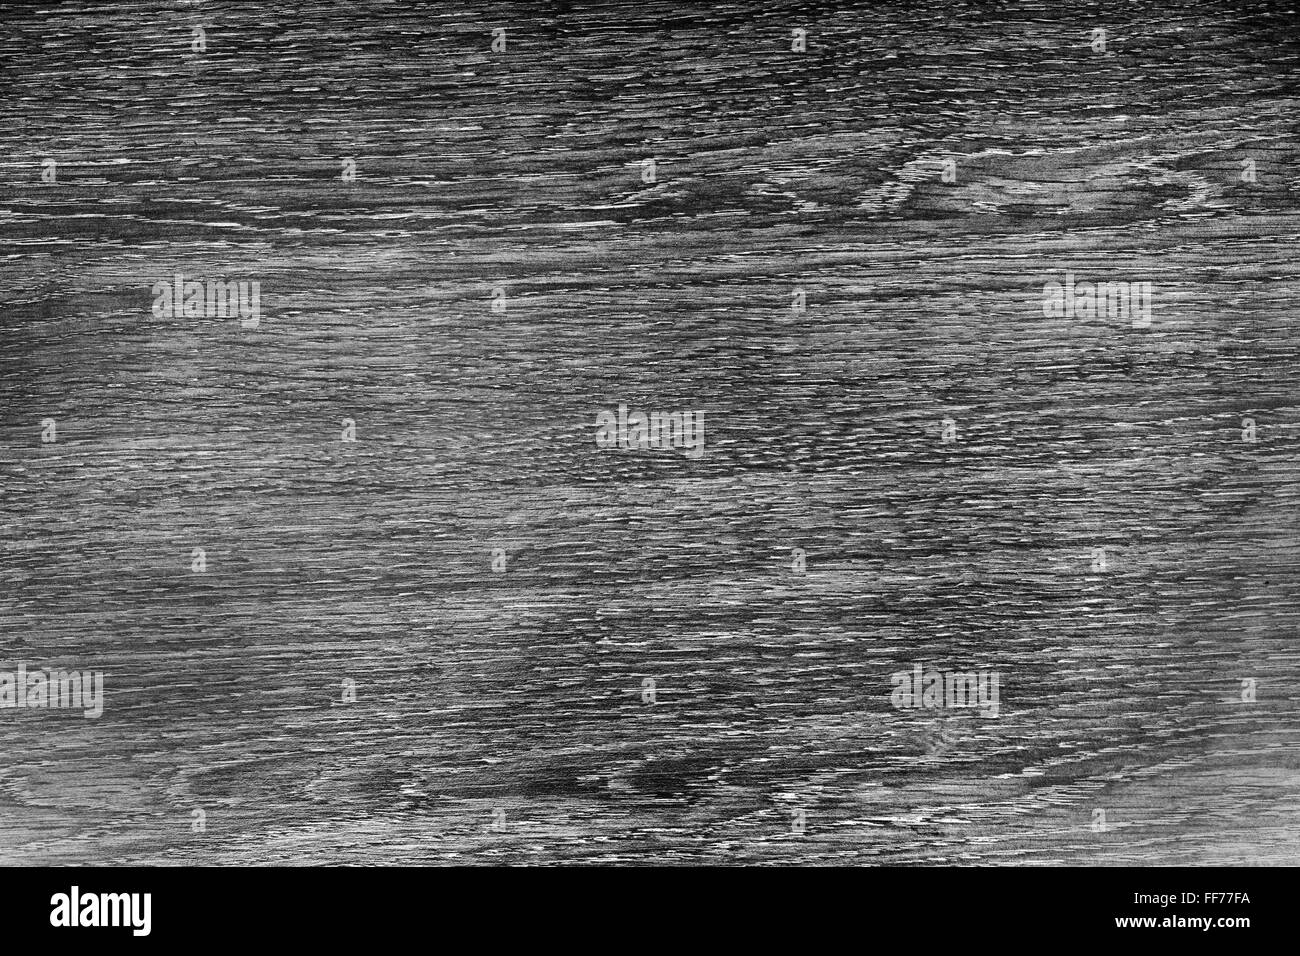 Texture of old wood pattern - Stock Image